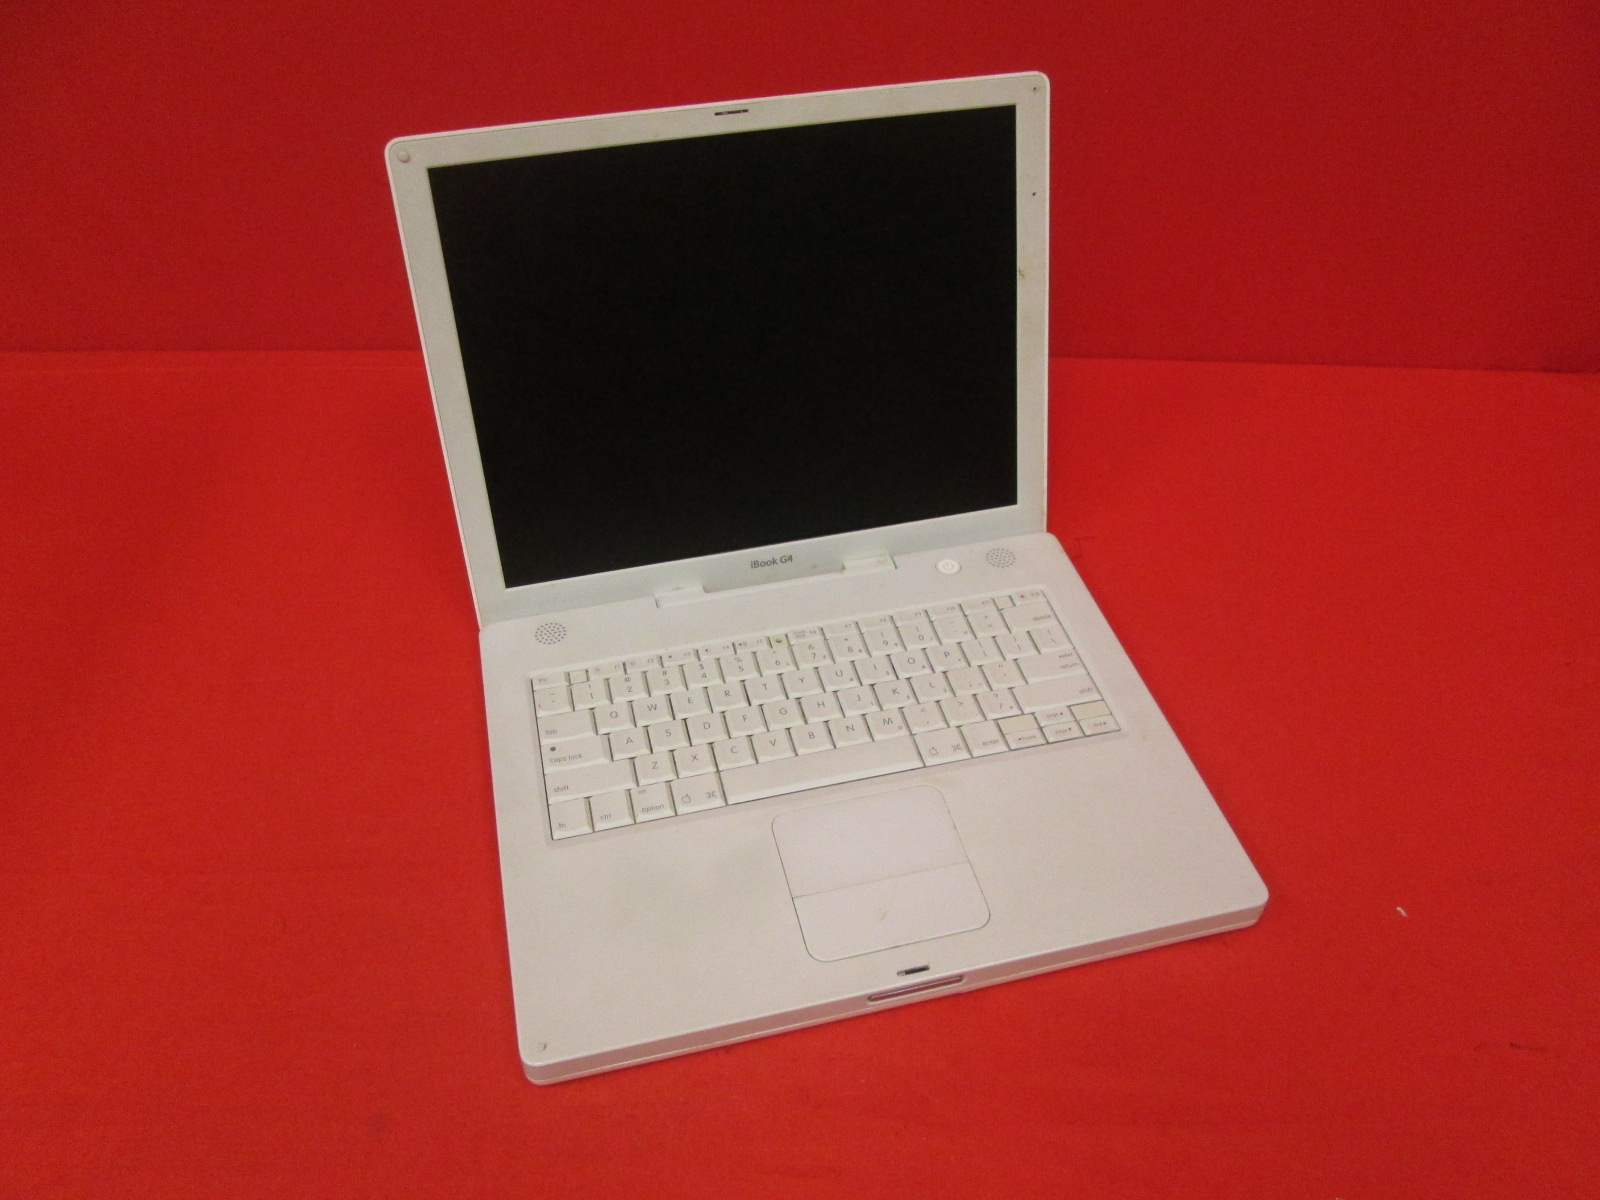 Apple Ibook G4 14.1-inch MAC Laptop 1.42 GHz 512MB 60GB A1134 Untested